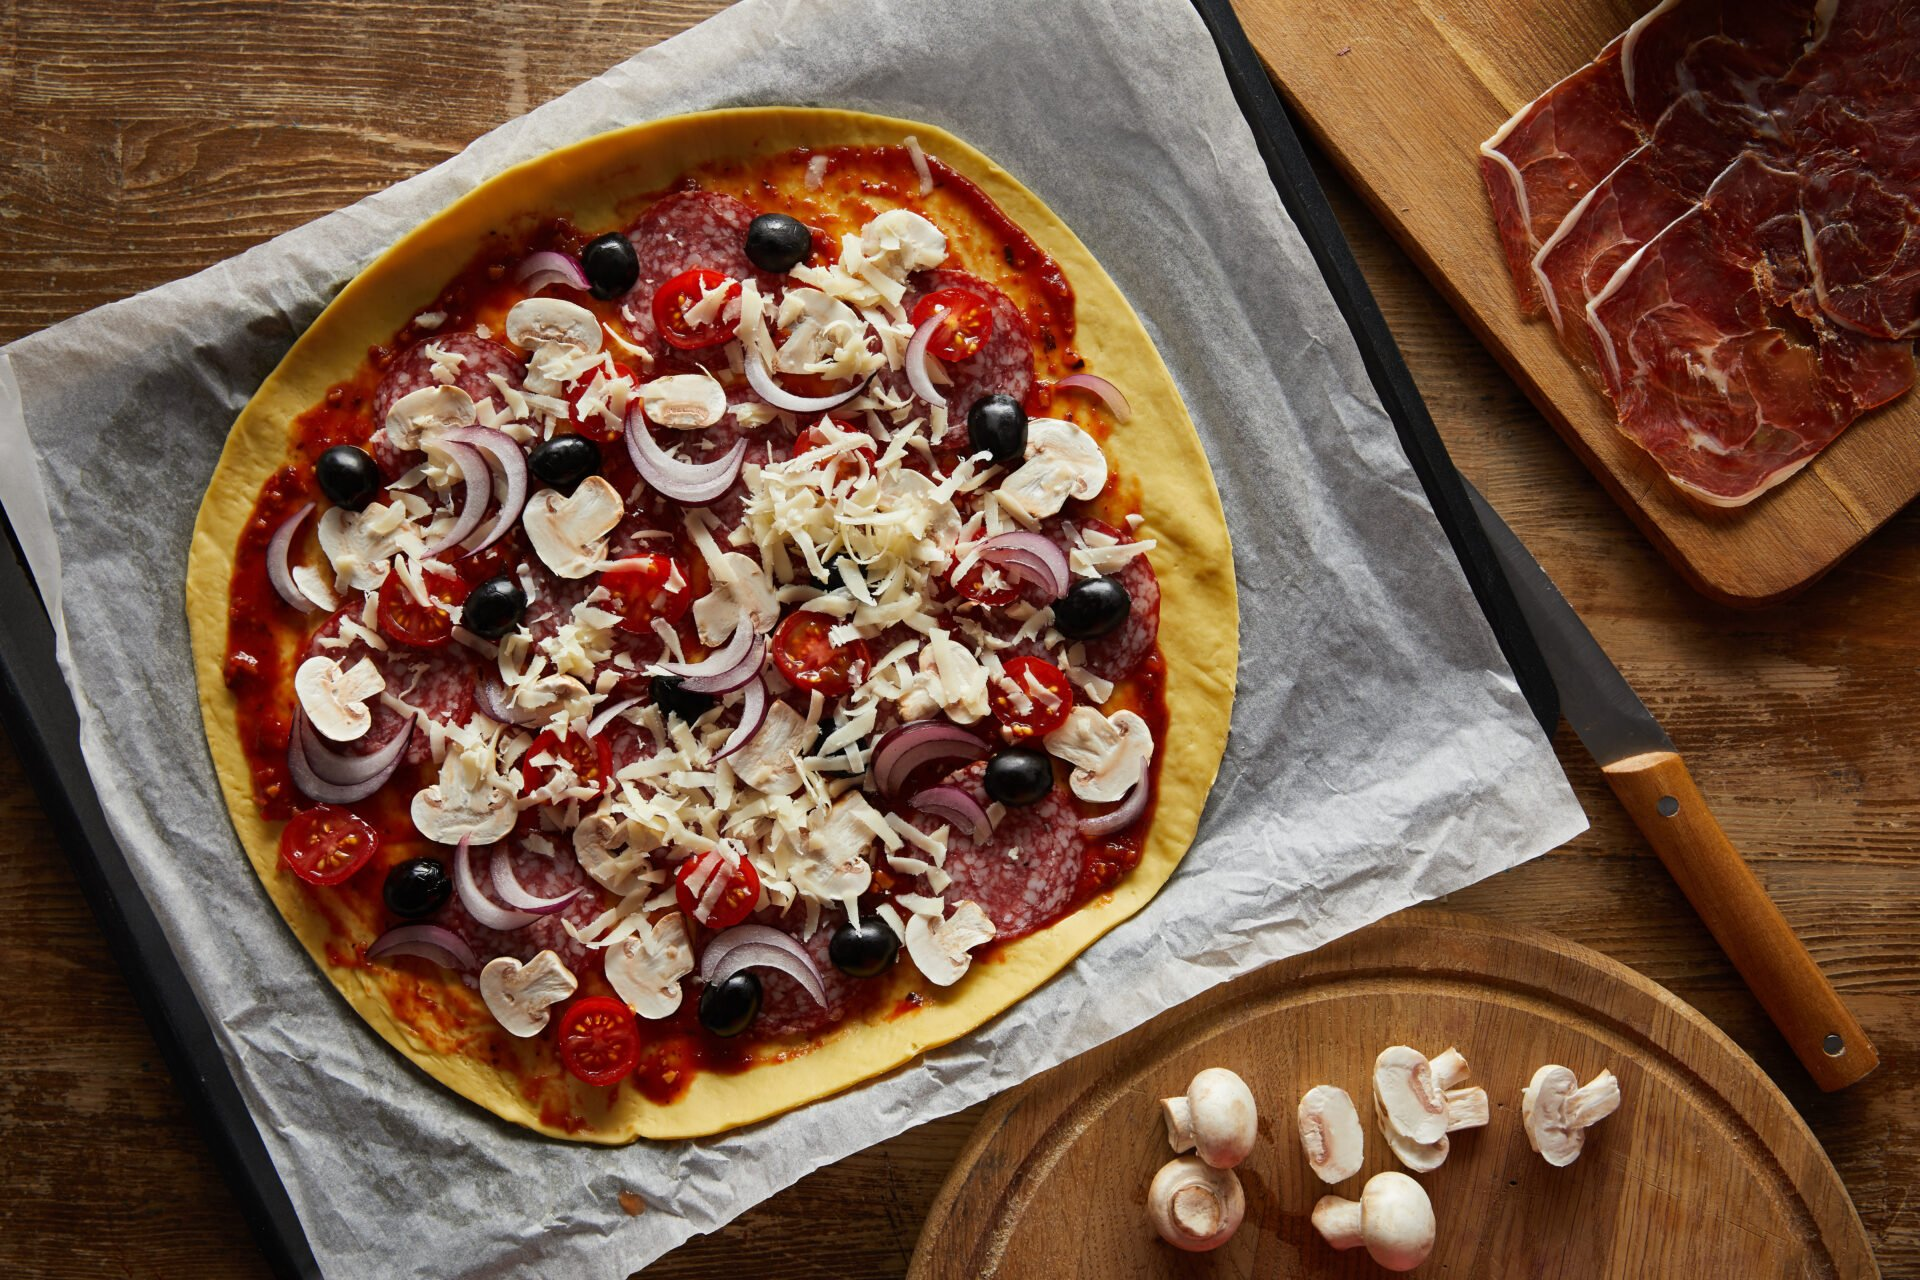 homemade pizza on parchment paper